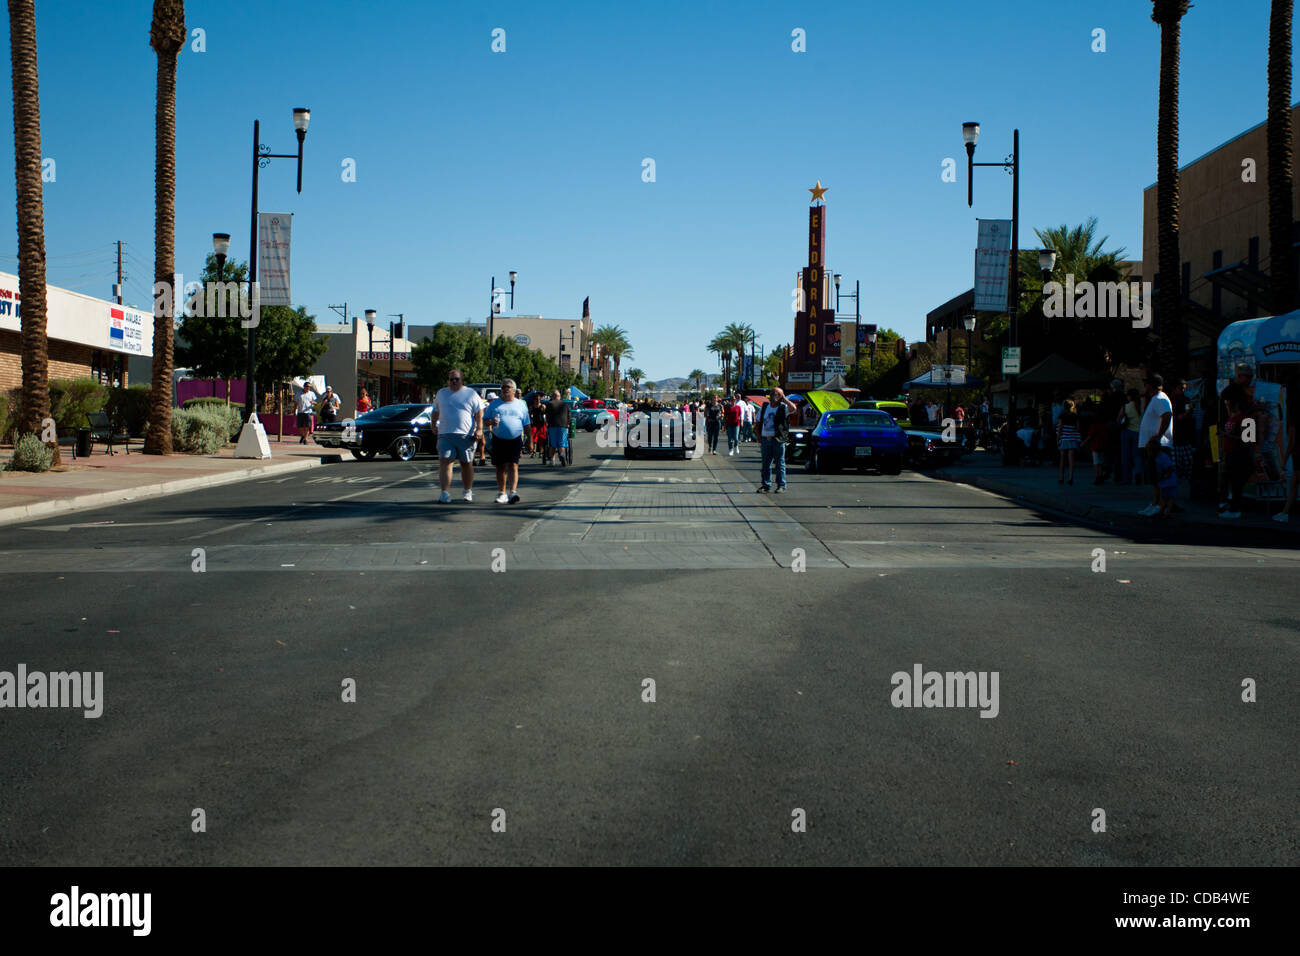 sept 26 2010 henderson nevada united states of america a look stock photo alamy alamy